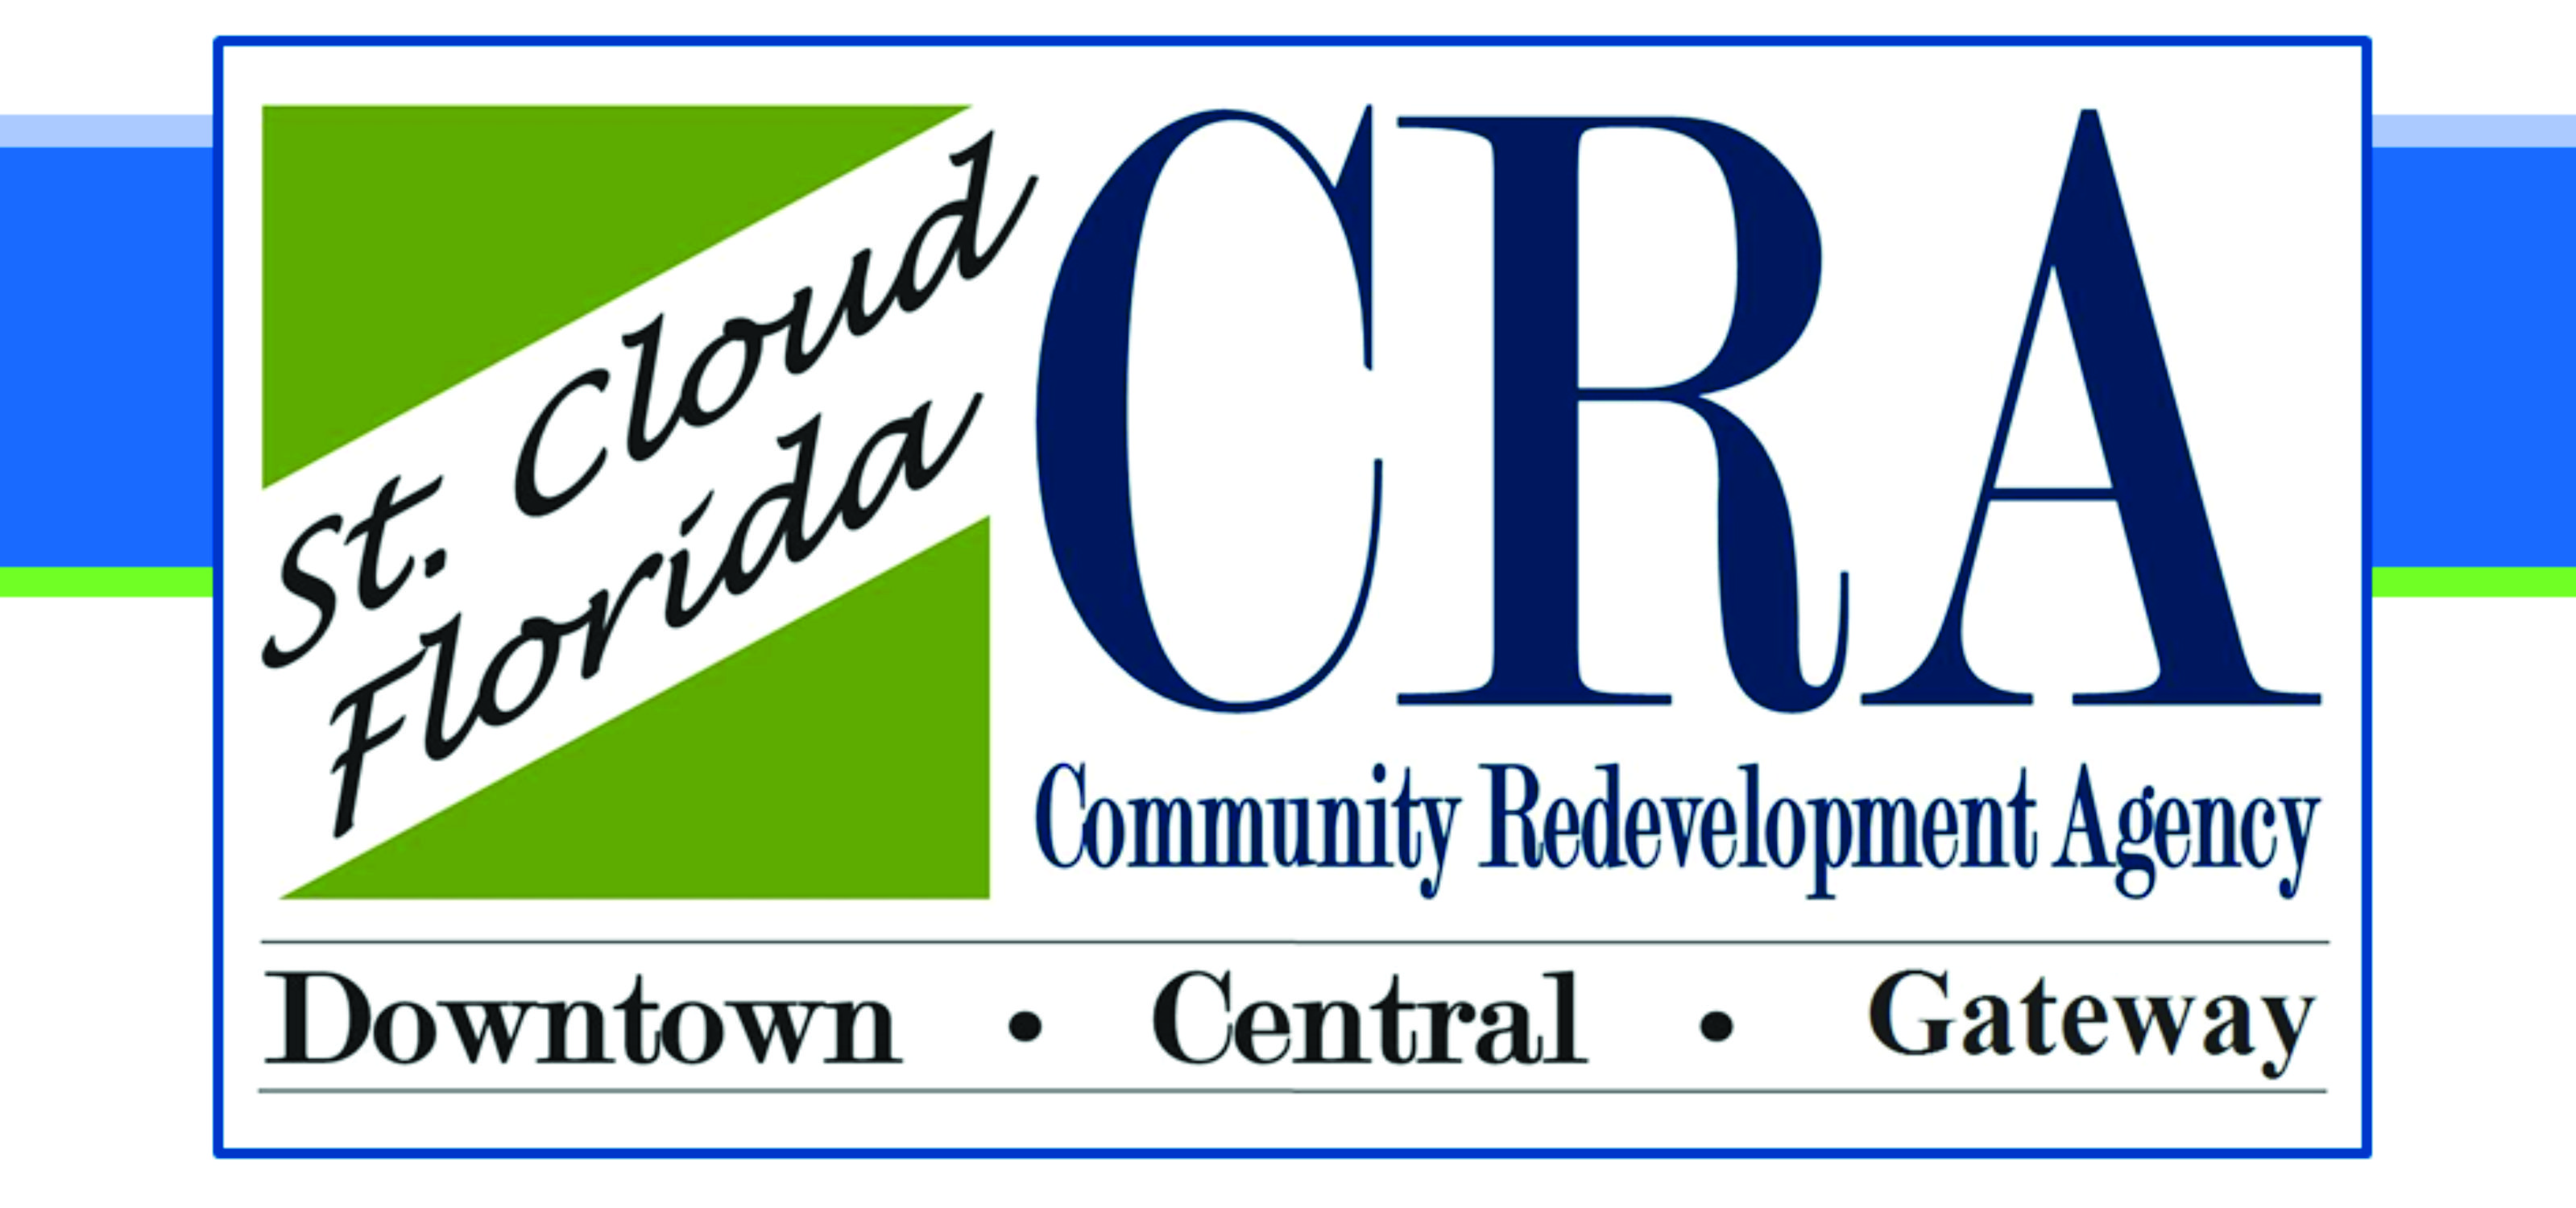 CRA - Community Redevelopment Agency - Downtown - Central - Gateway